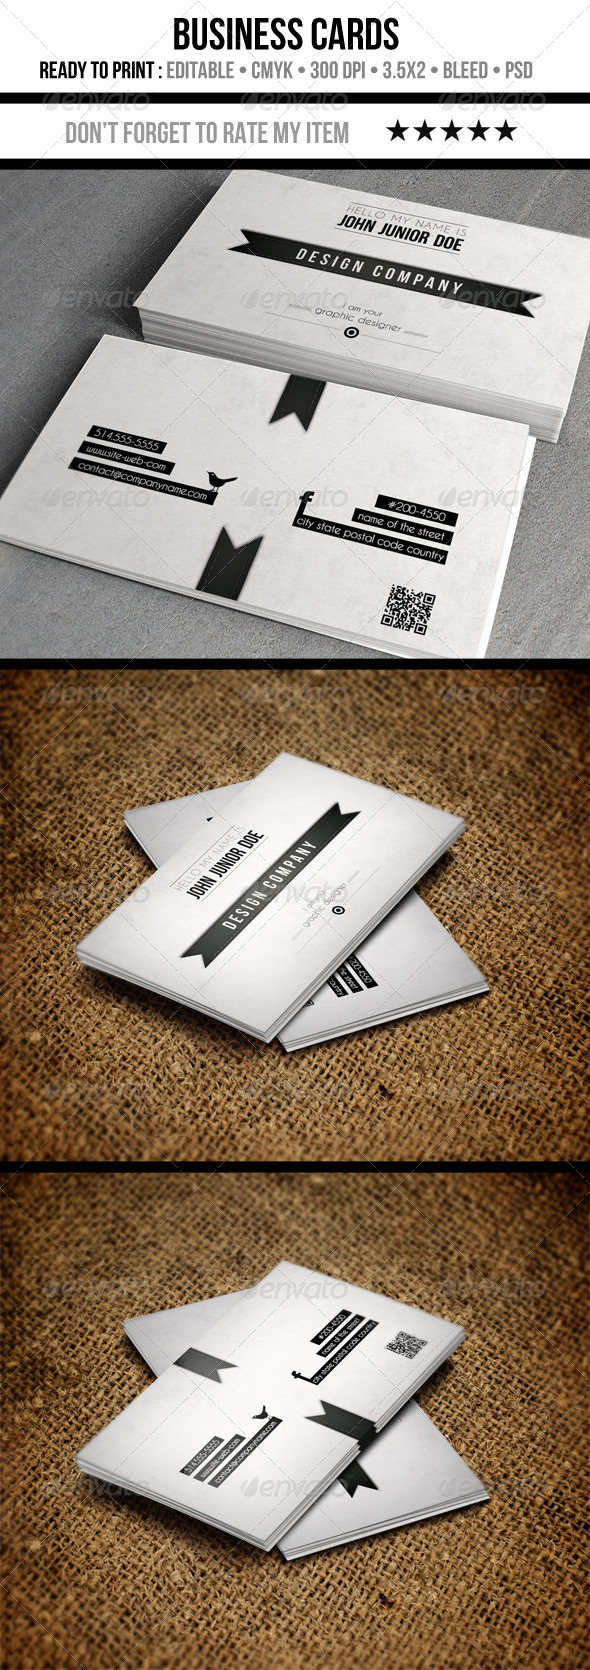 GraphicRiver Retro Businness Cards 3446682